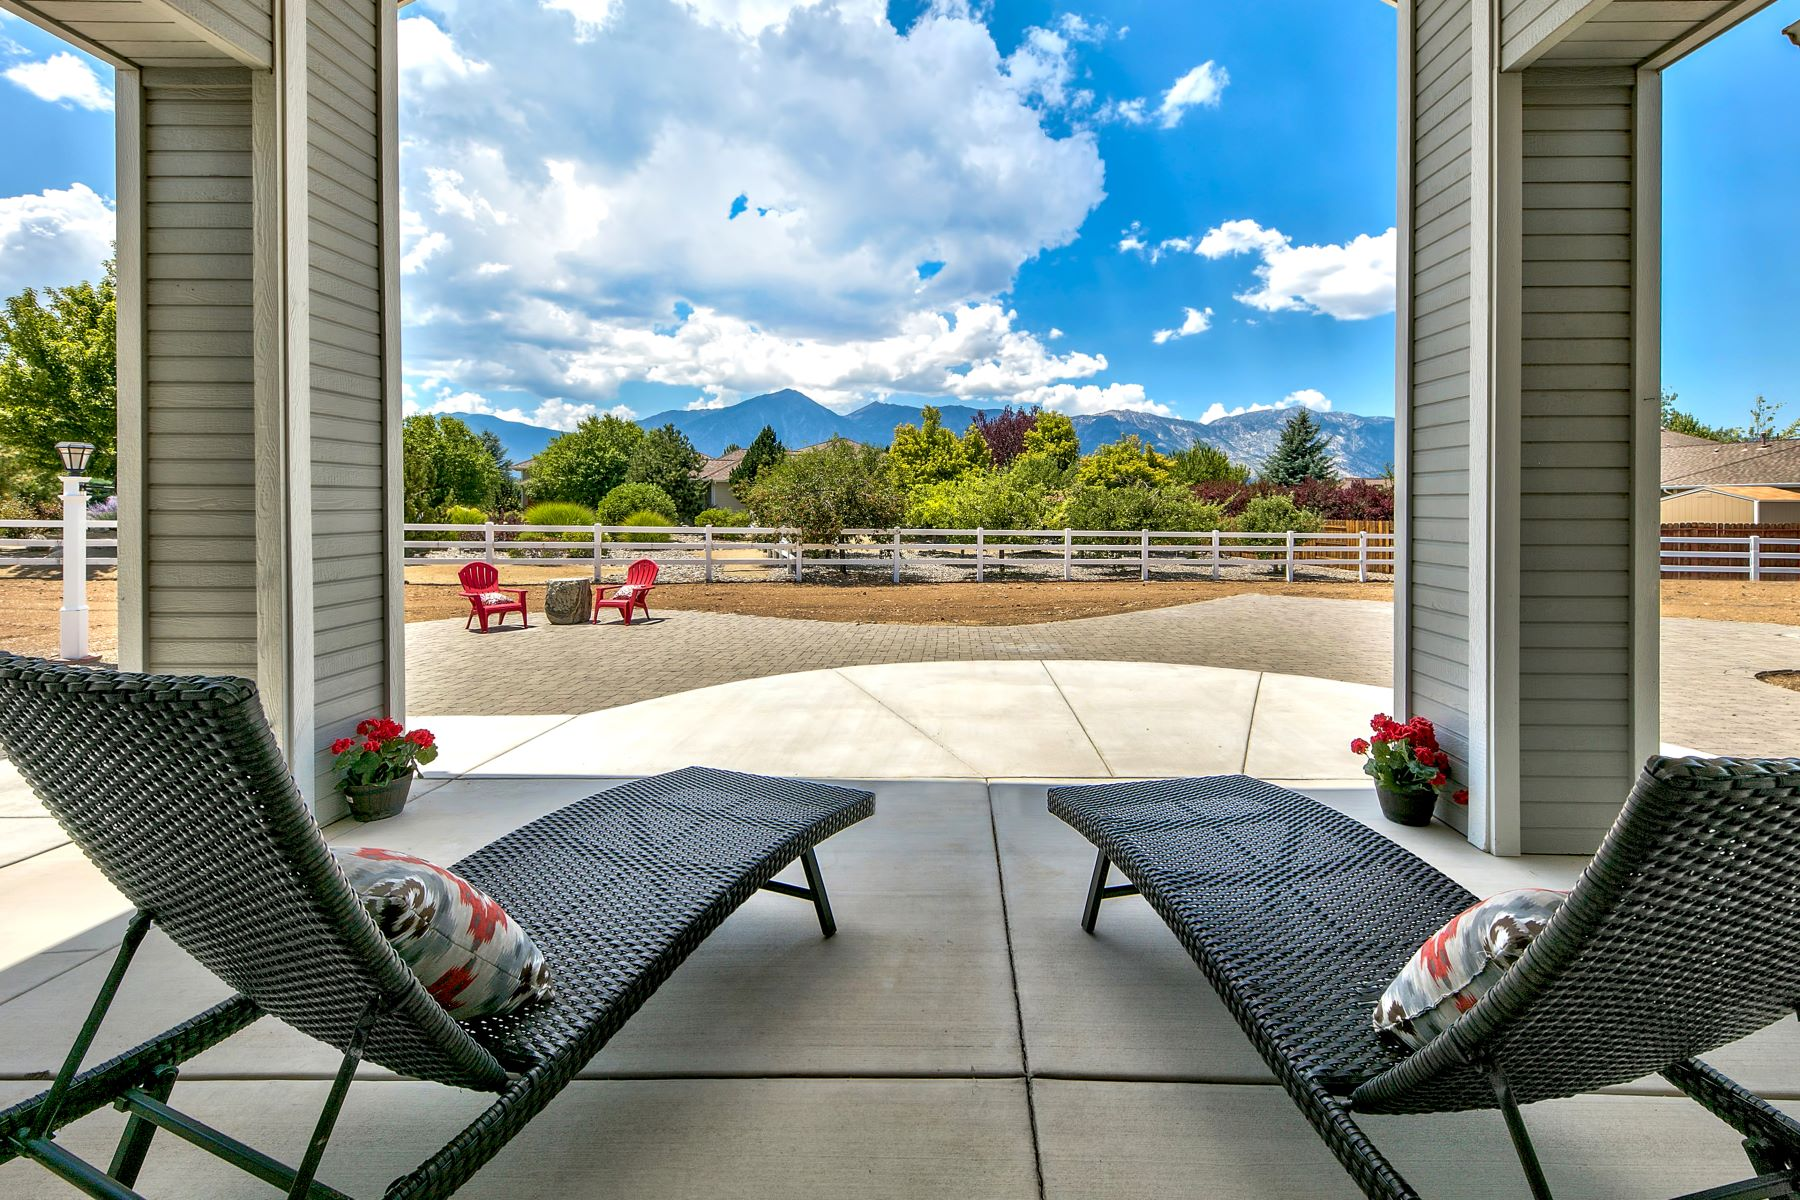 Single Family Homes for Active at A True Clean Slate 1201 Sierra Vista Drive Gardnerville, Nevada 89460 United States